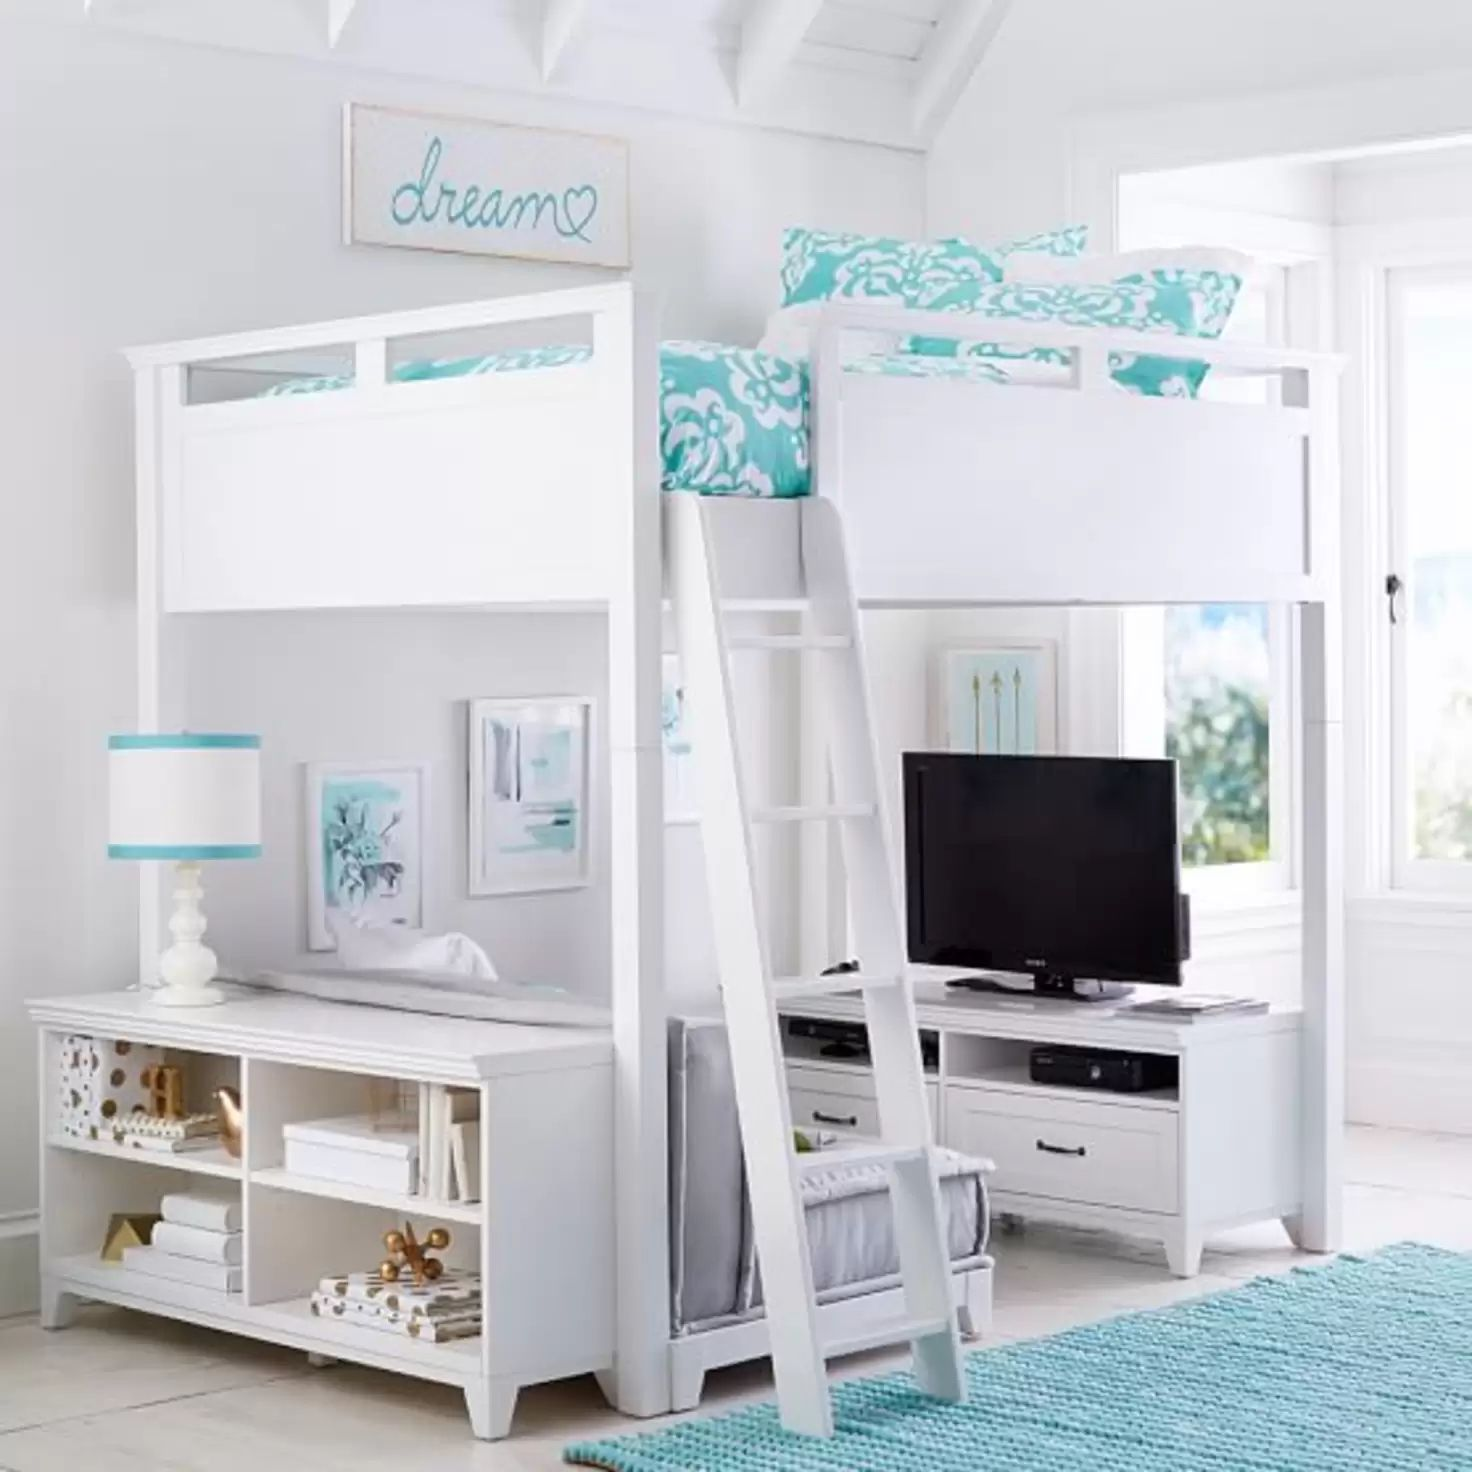 Loft bedroom ideas for teenage girls  Pin by Chloe Mcmurray on Home decor  Pinterest  Bedrooms Spaces